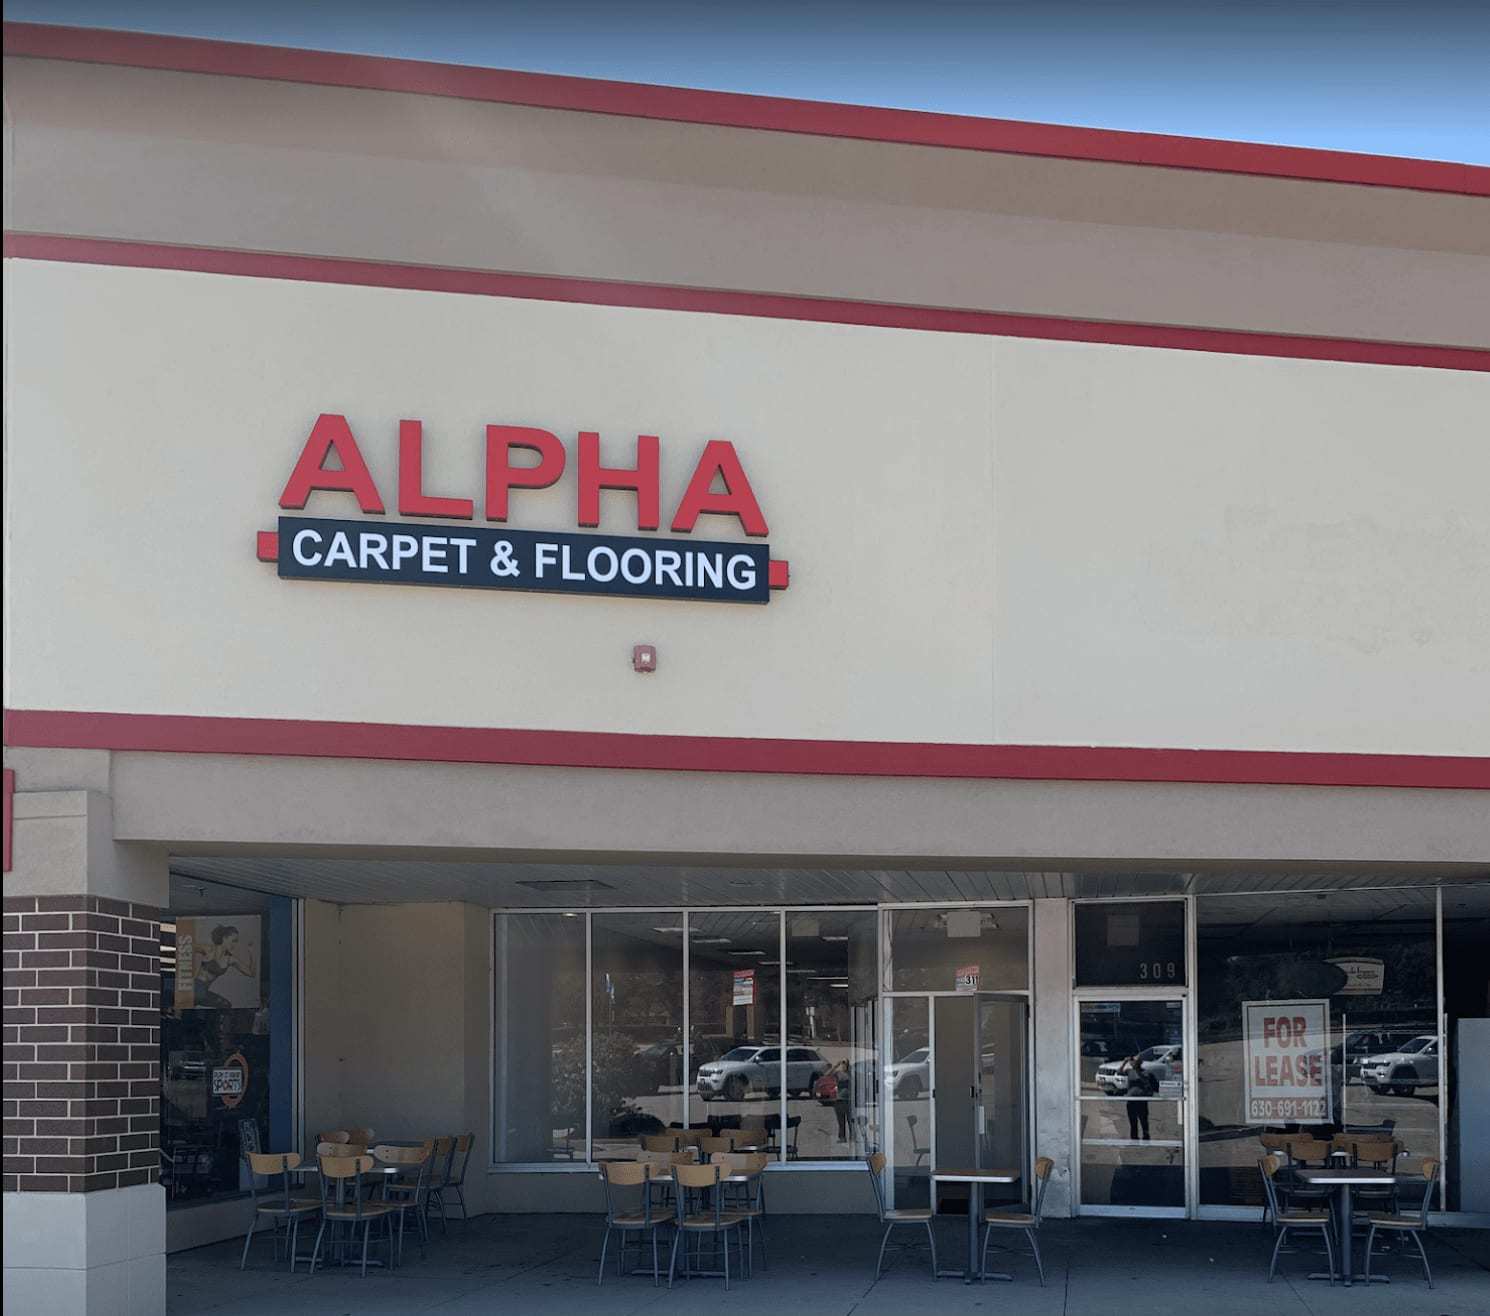 The Alpha Carpet & Flooring storefront in Palatine, IL